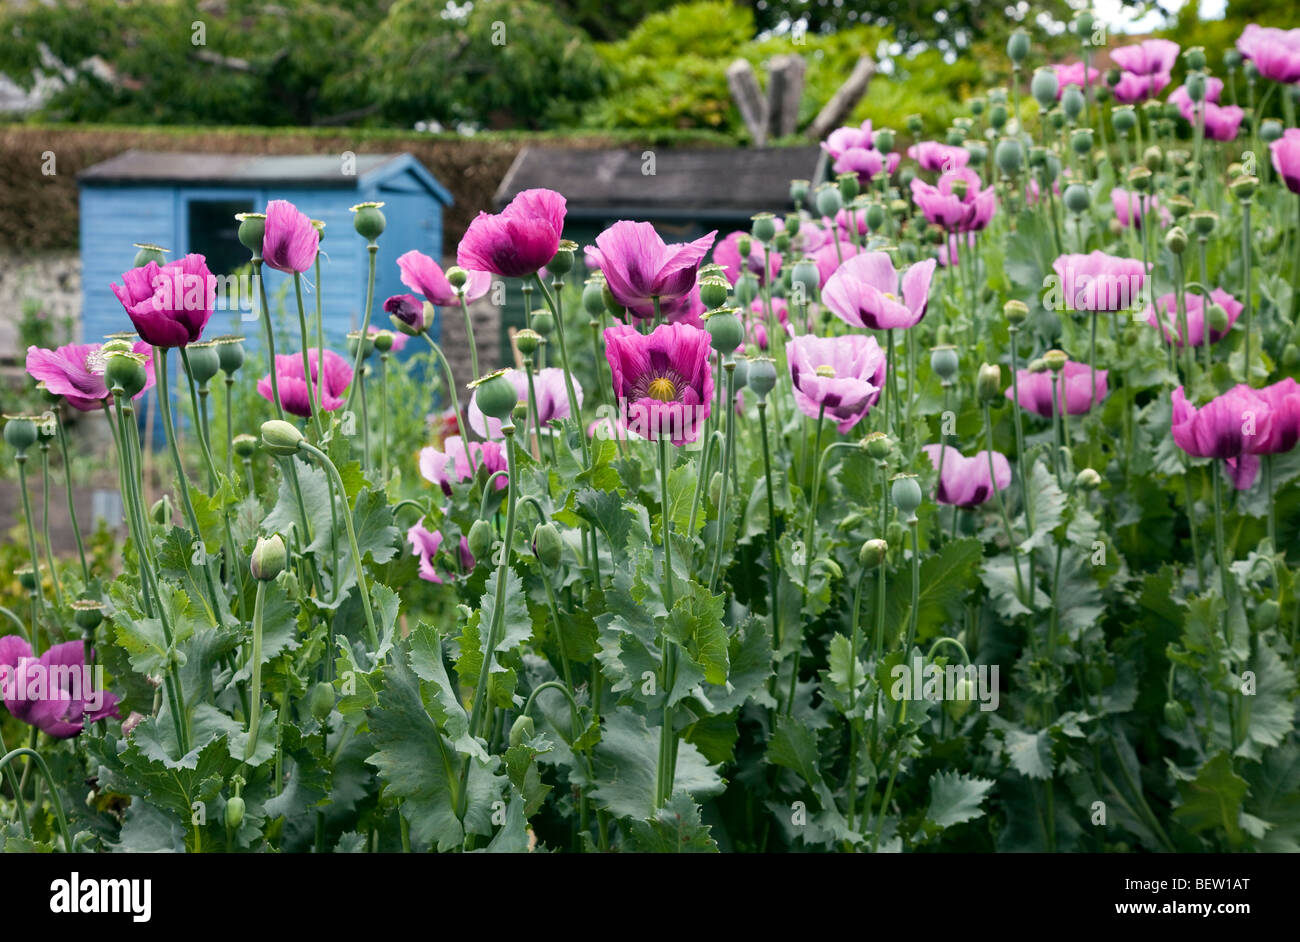 Crop of purple Poppies in an English county garden - Stock Image